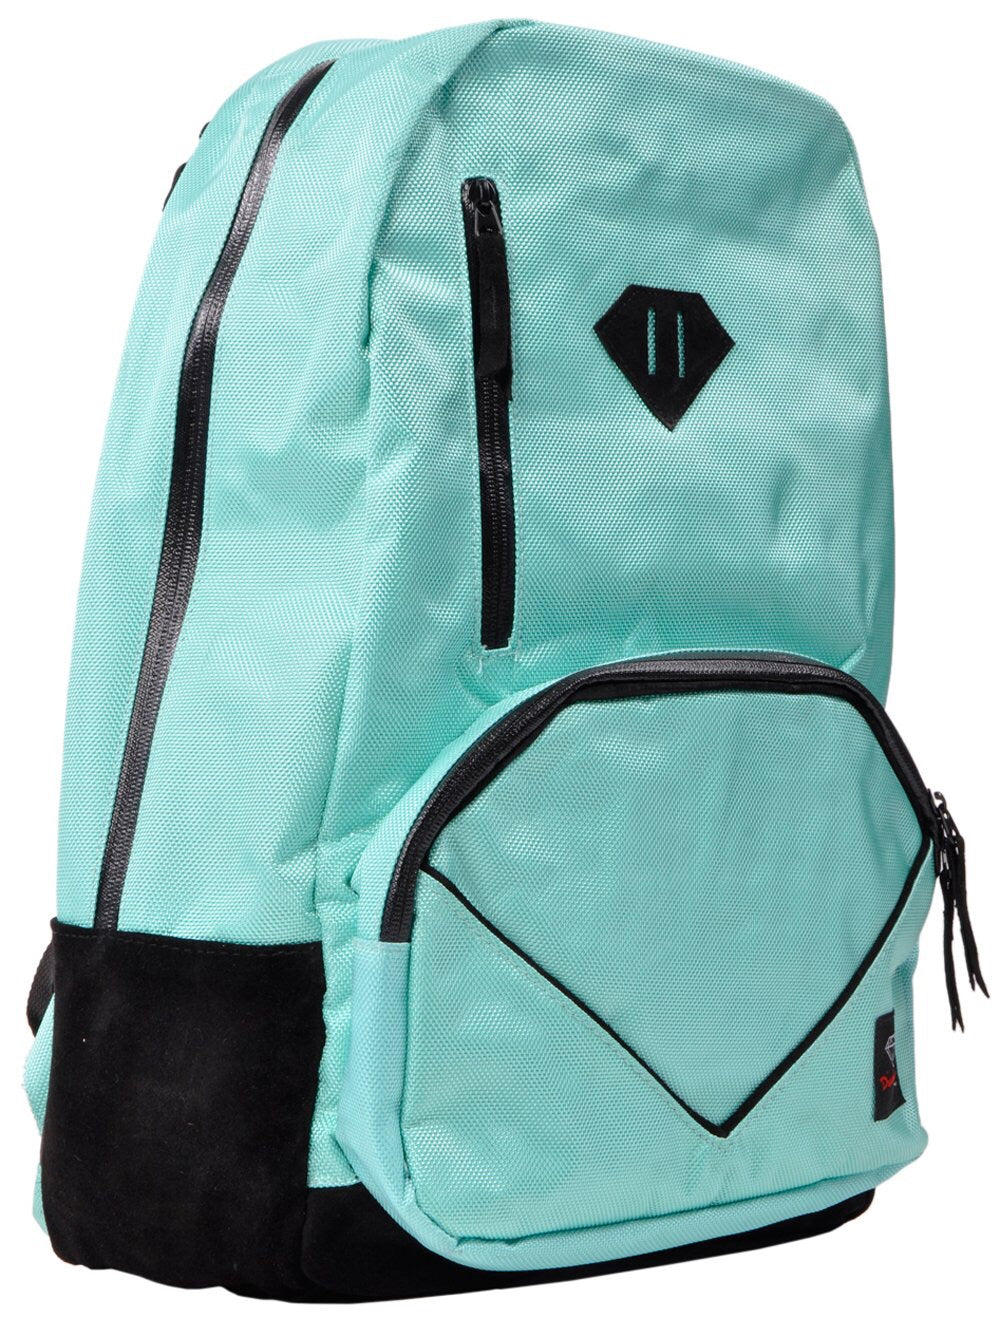 Diamond Supply Co - Diamond Life Backpack - KICKS 'N' STEEZ